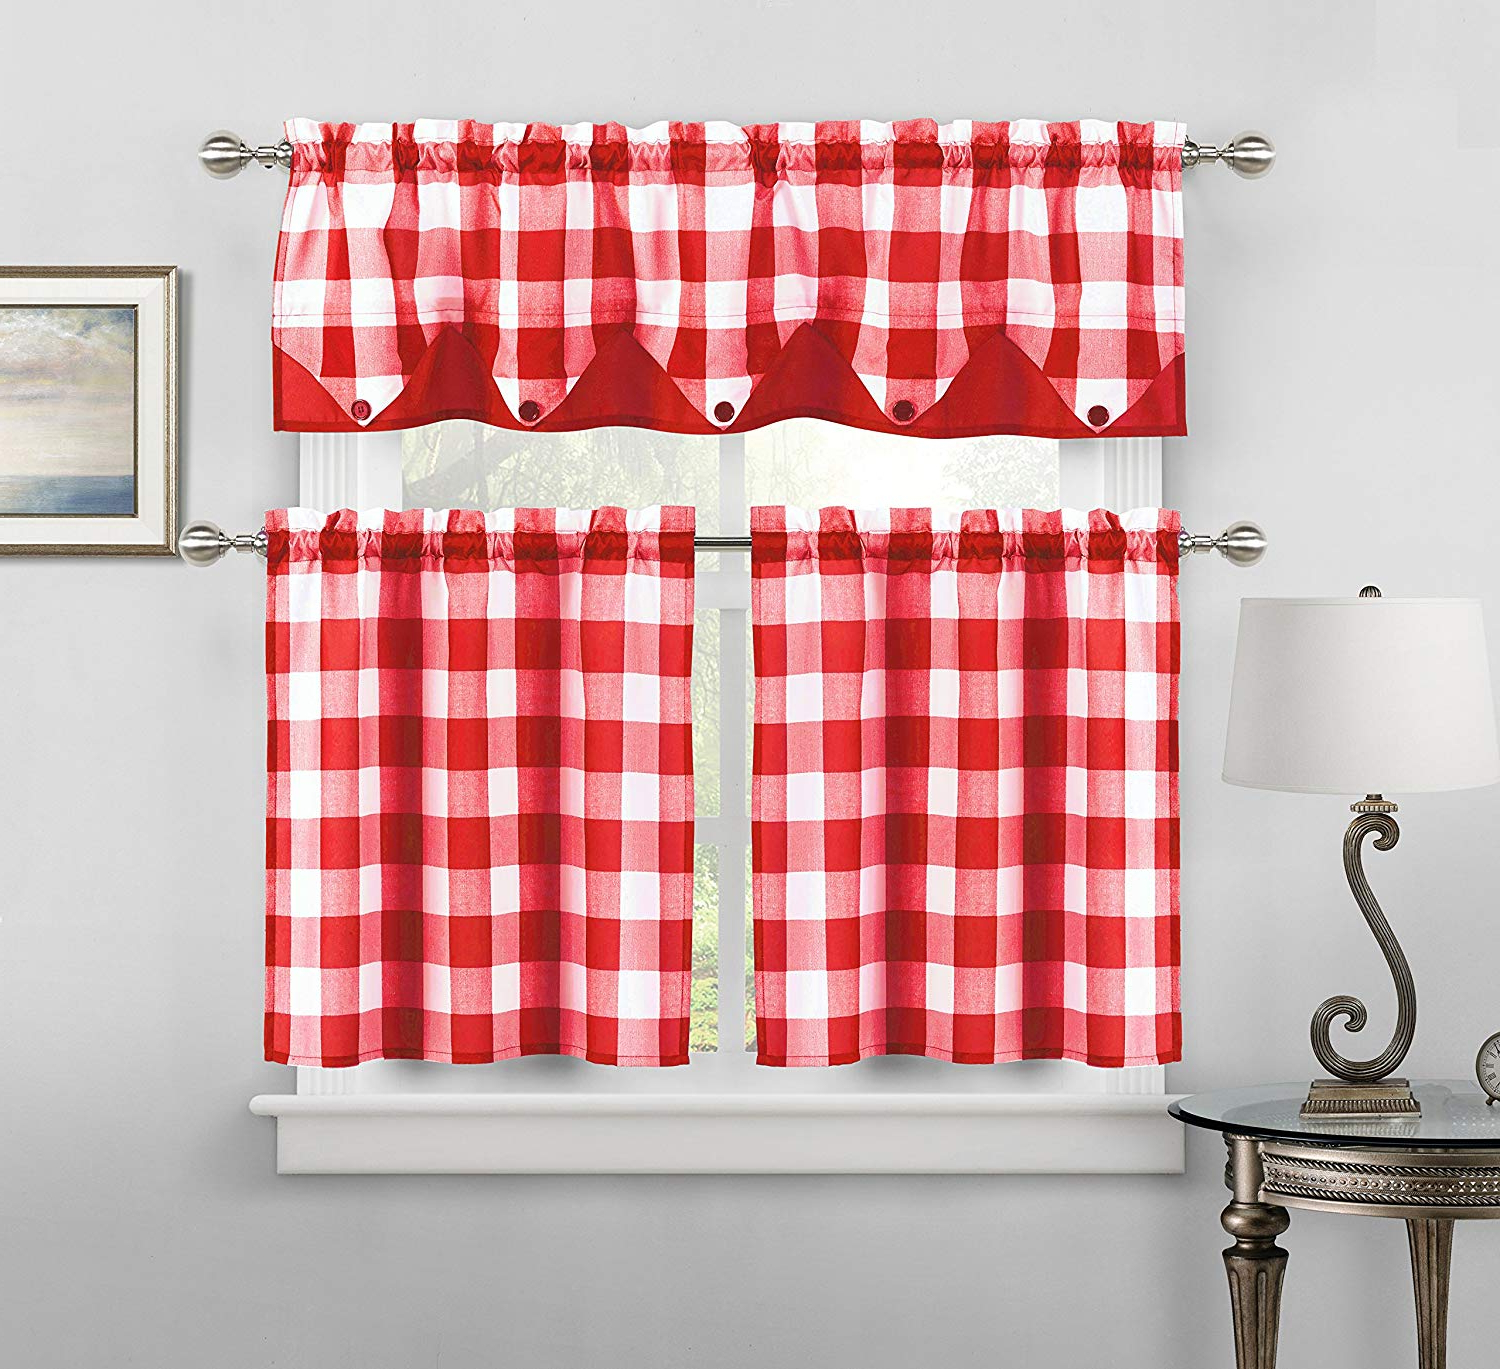 Trendy Kitchen Window Tier Sets Throughout Amazon: Home Maison Kingdy Checkered Kitchen Window (View 17 of 20)